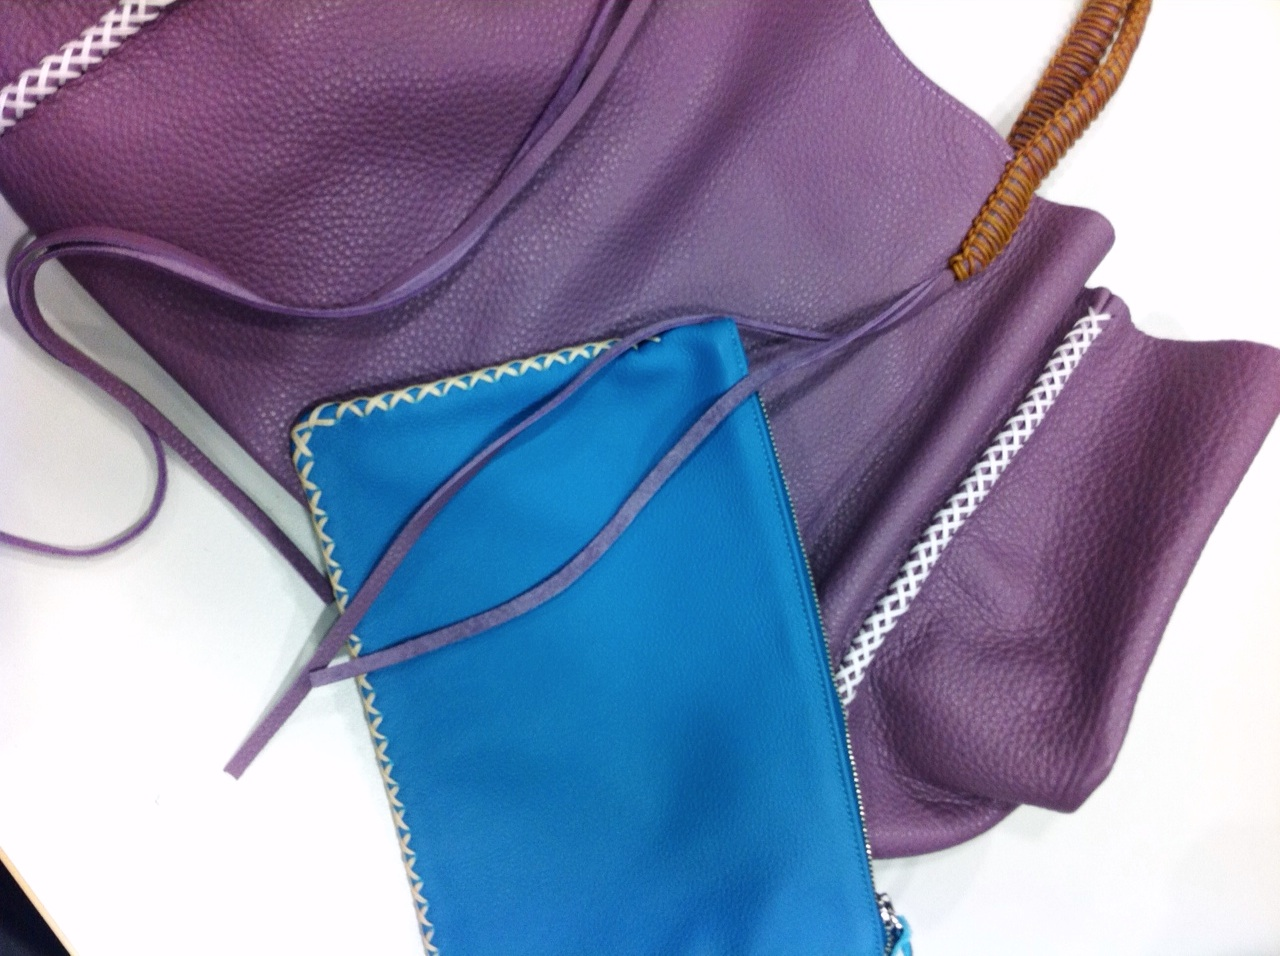 ysmf.callista.summer.collection.2015.purple.bag